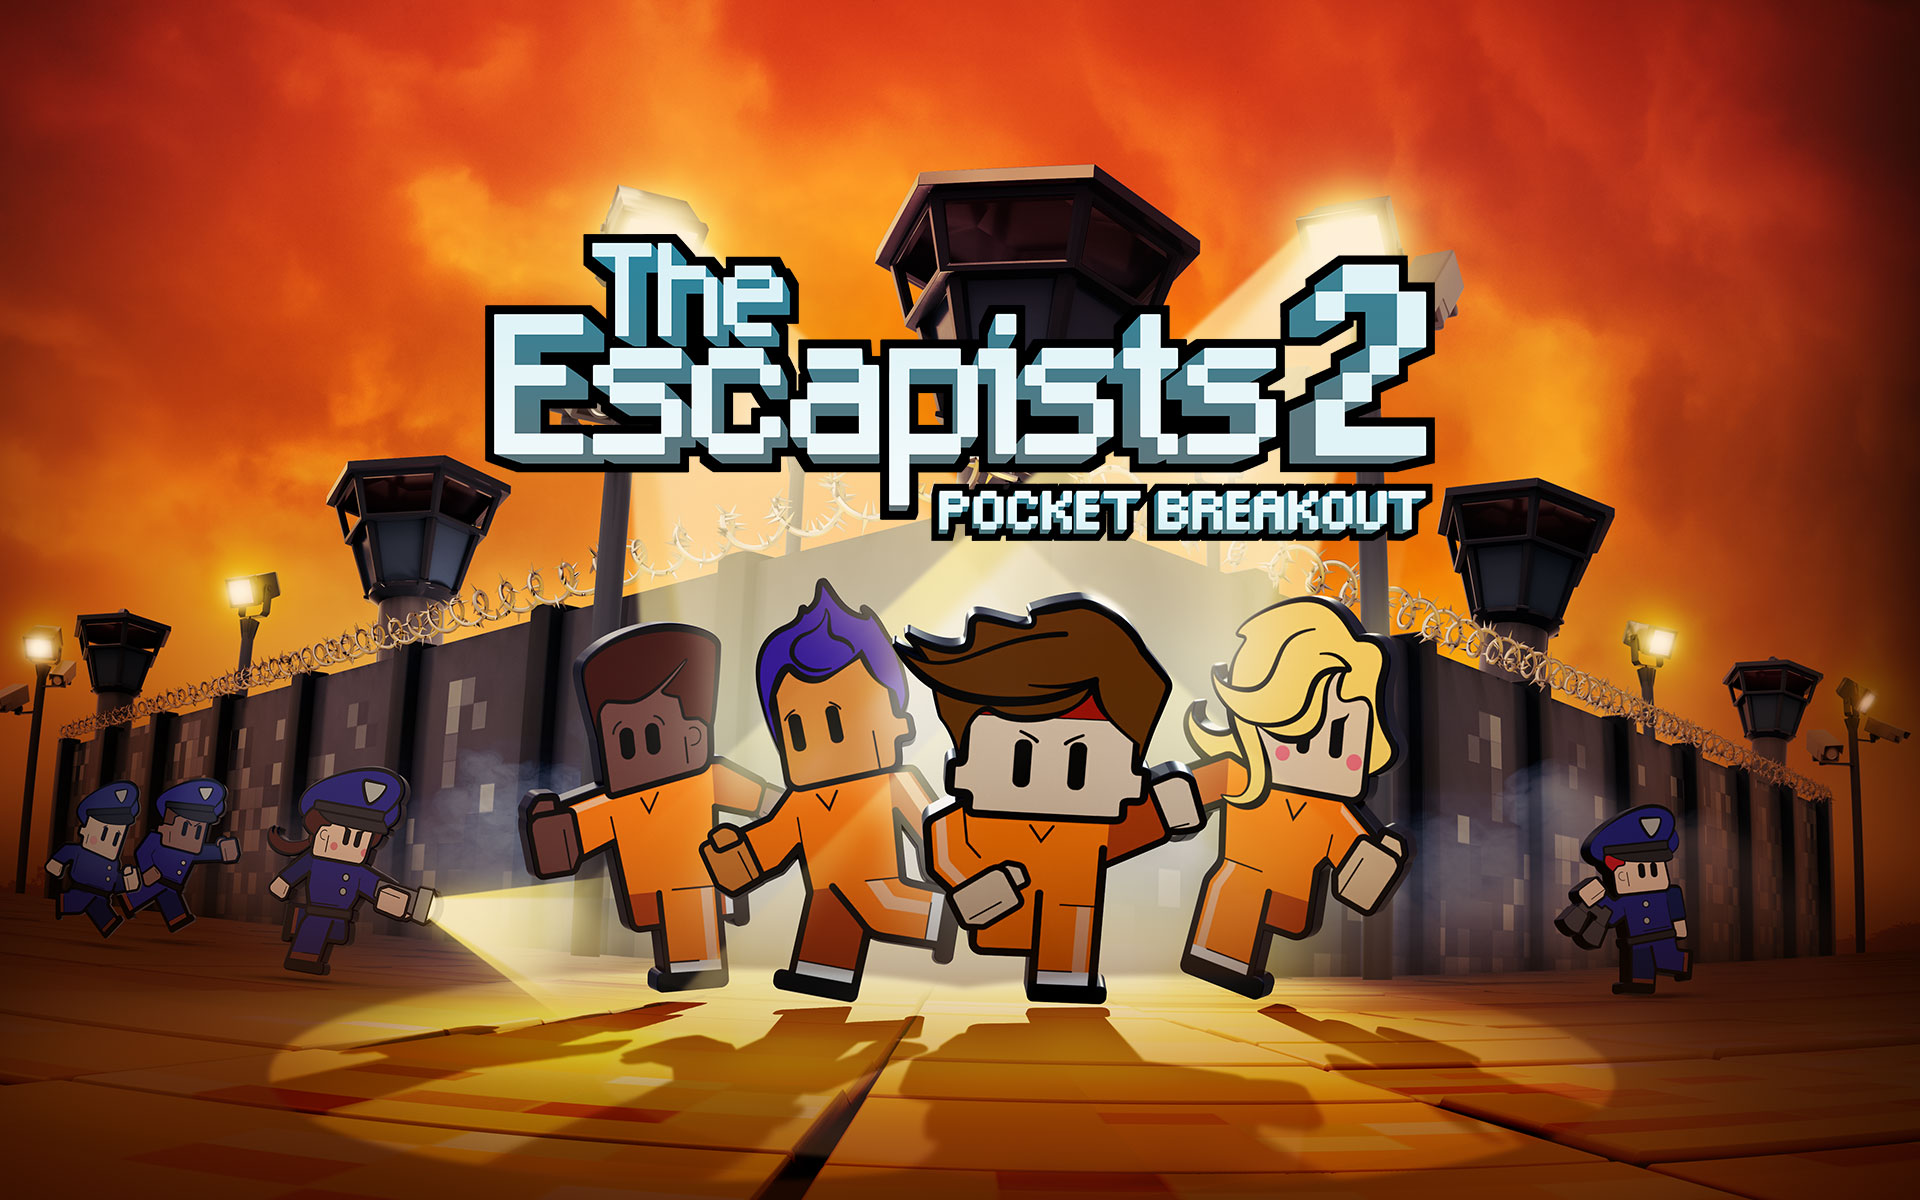 FREE UPDATE ALERT! Fort Tundra Prison Has Landed in The Escapists 2: Pocket Breakout!